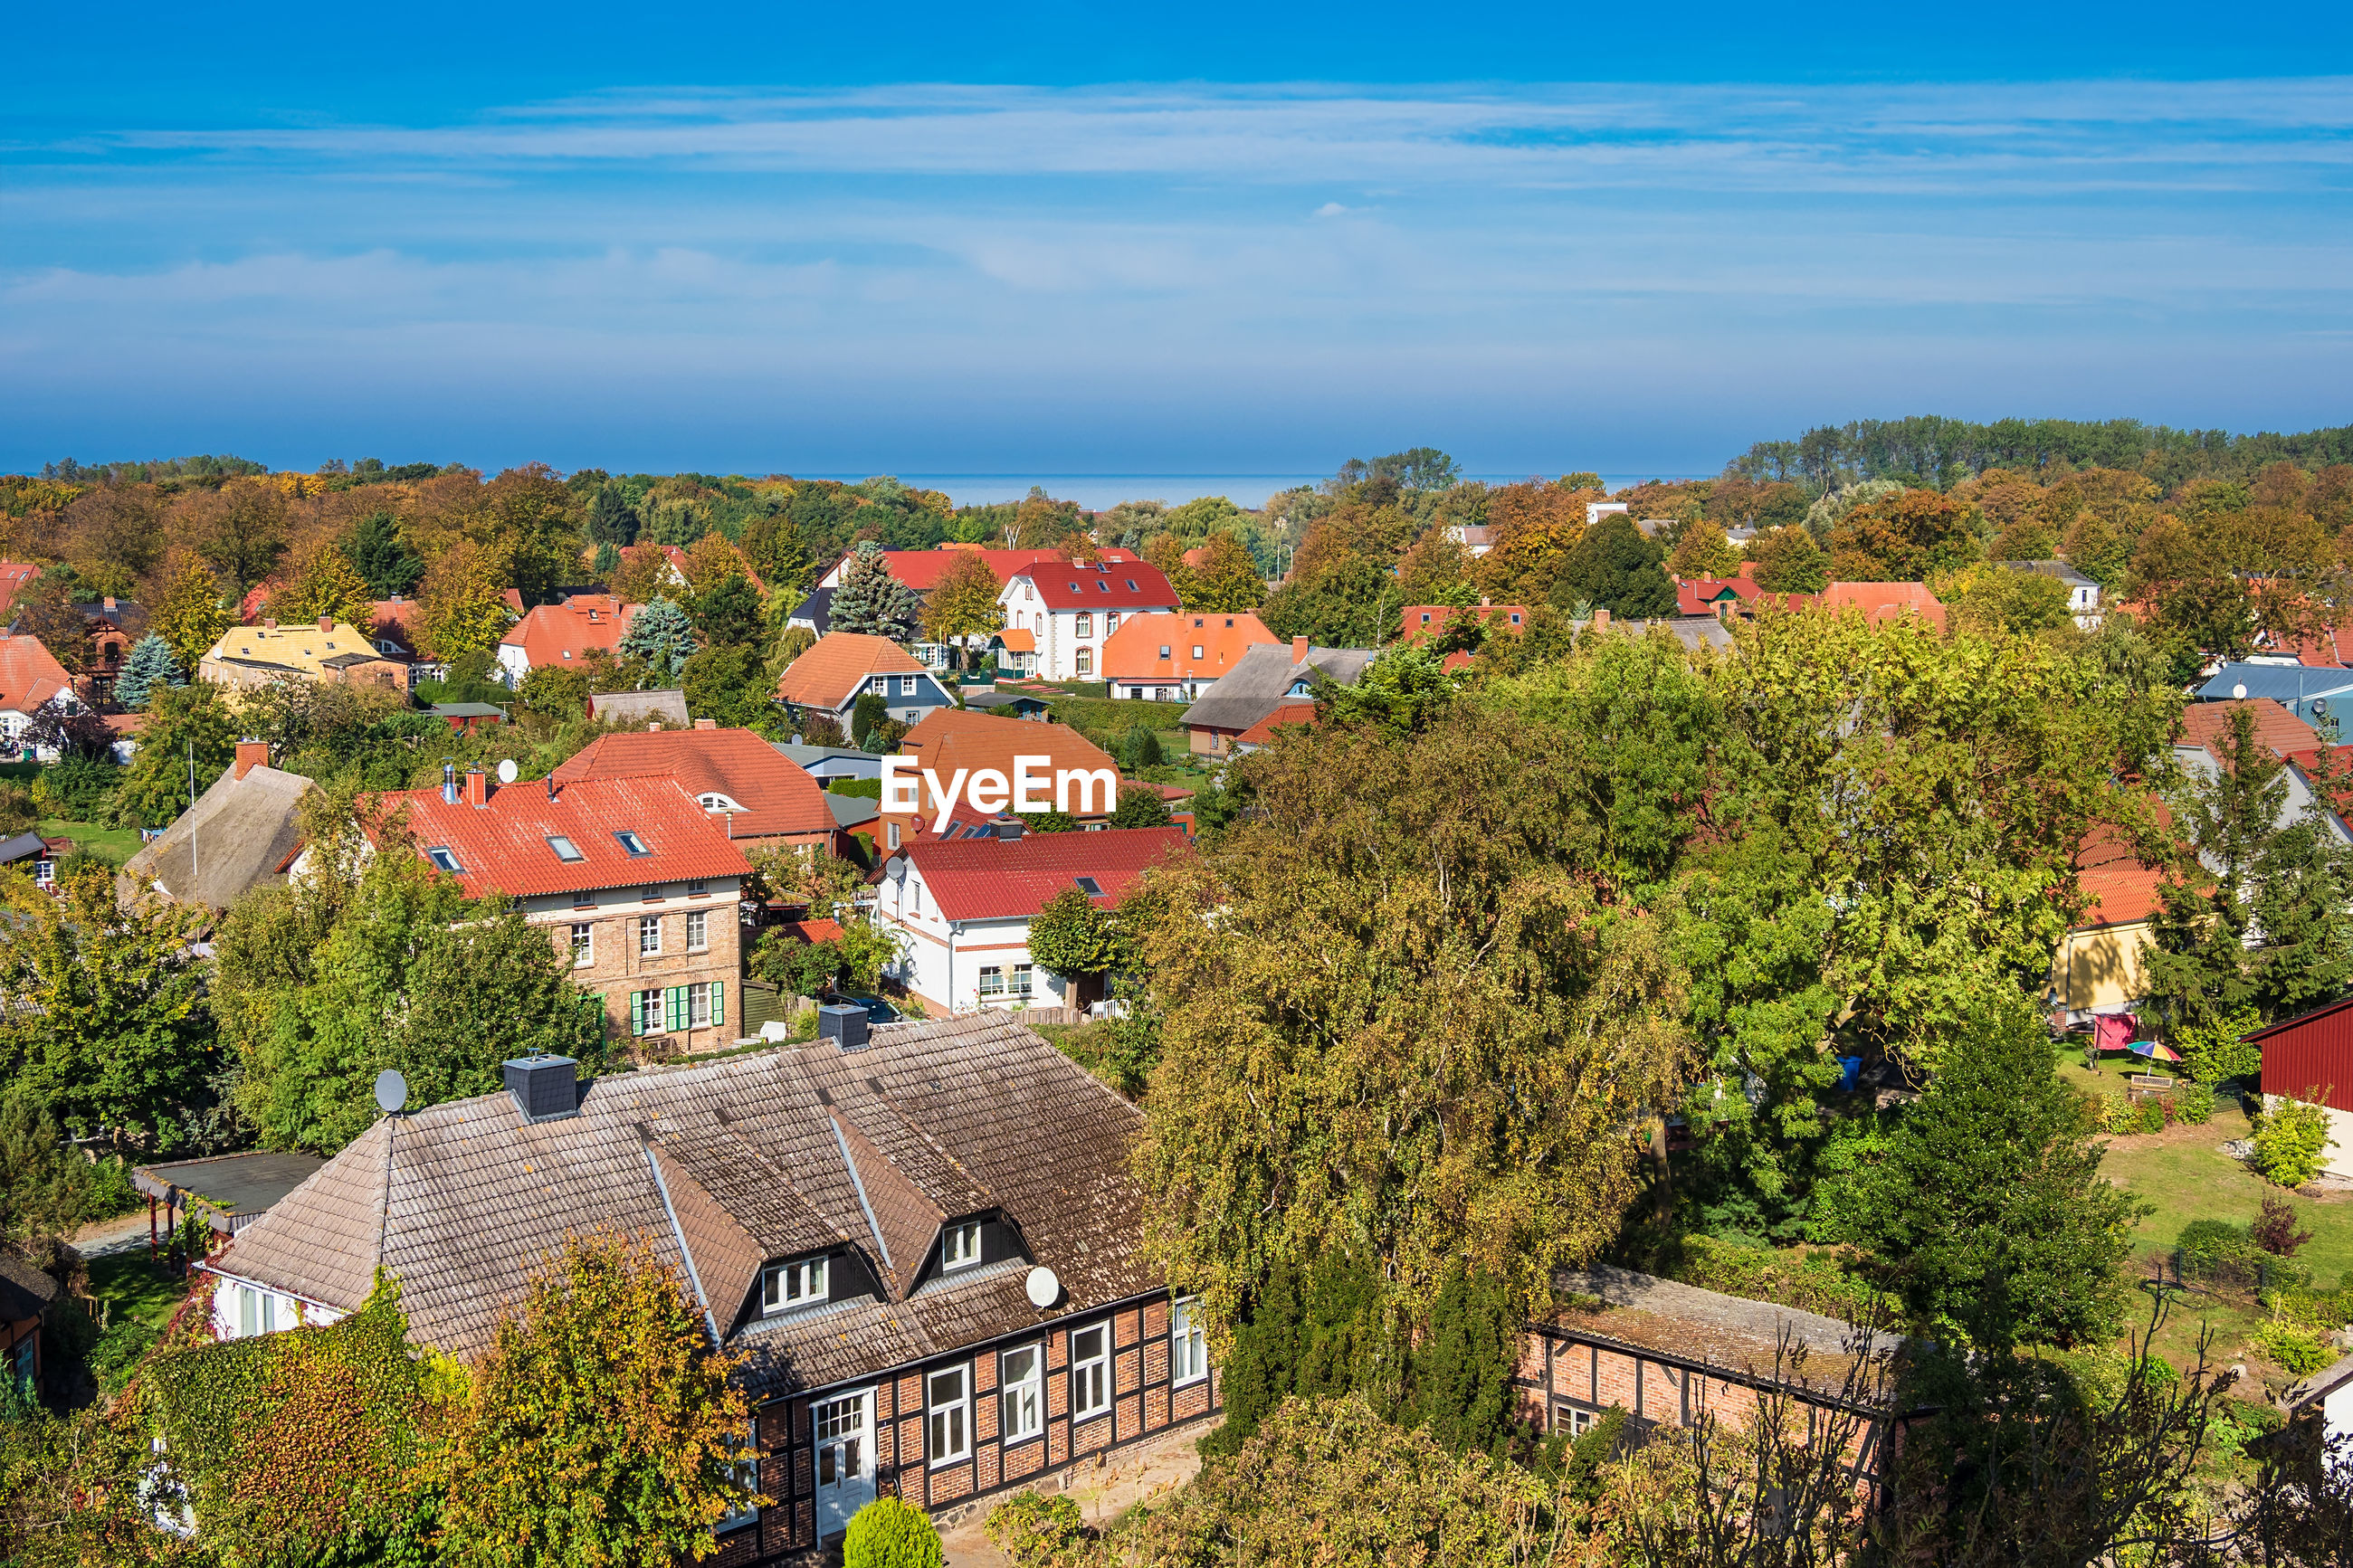 HIGH ANGLE VIEW OF TOWNSCAPE AND TREES BY HOUSES AGAINST SKY